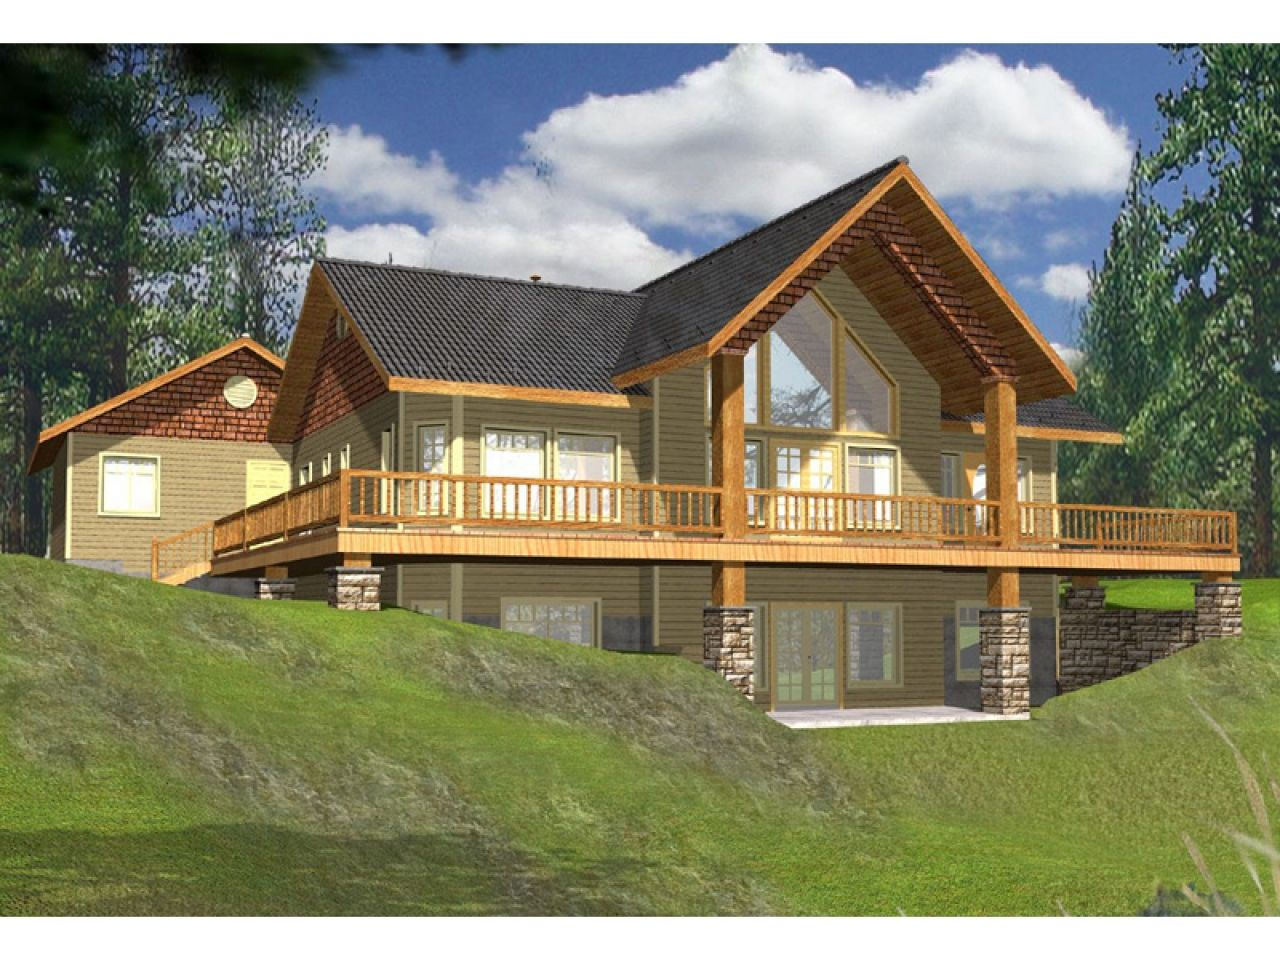 Lake House Plans With Rear View Wrap Around Lakefront Porches Front Home Basement House Plans Rustic House Plans Lake House Plans